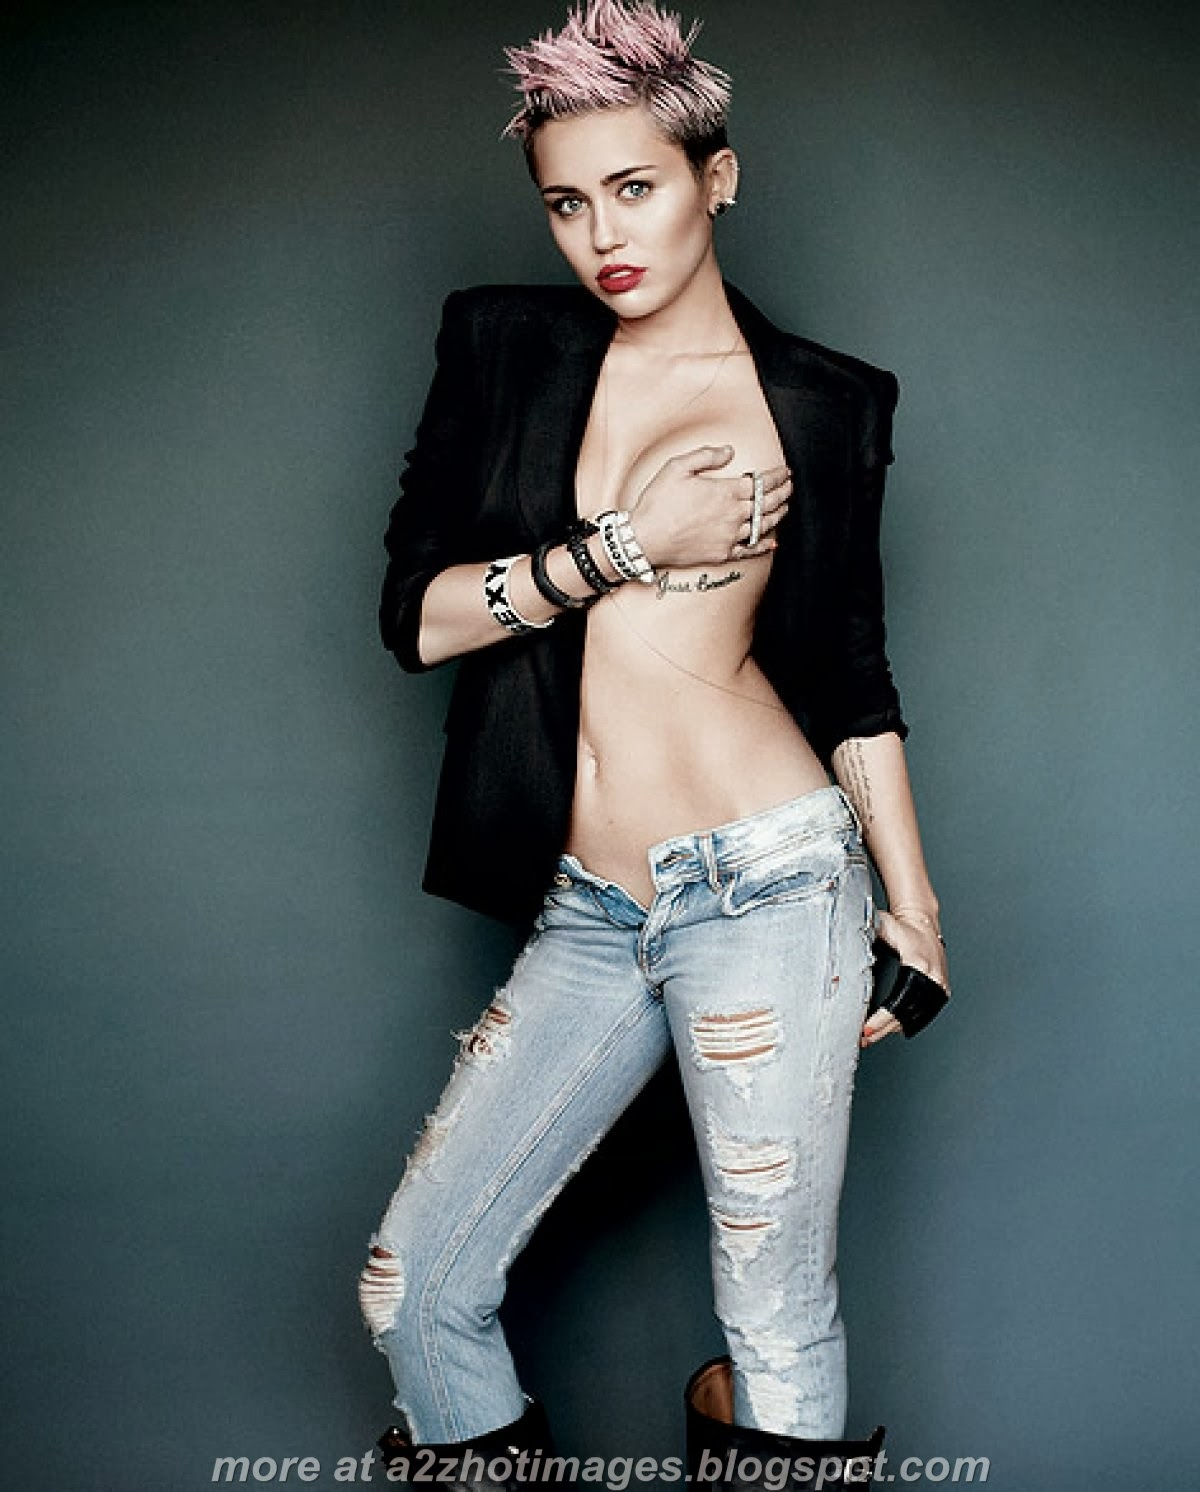 Miley Cyrus: 10 Skin-Baring Shots! Access Online